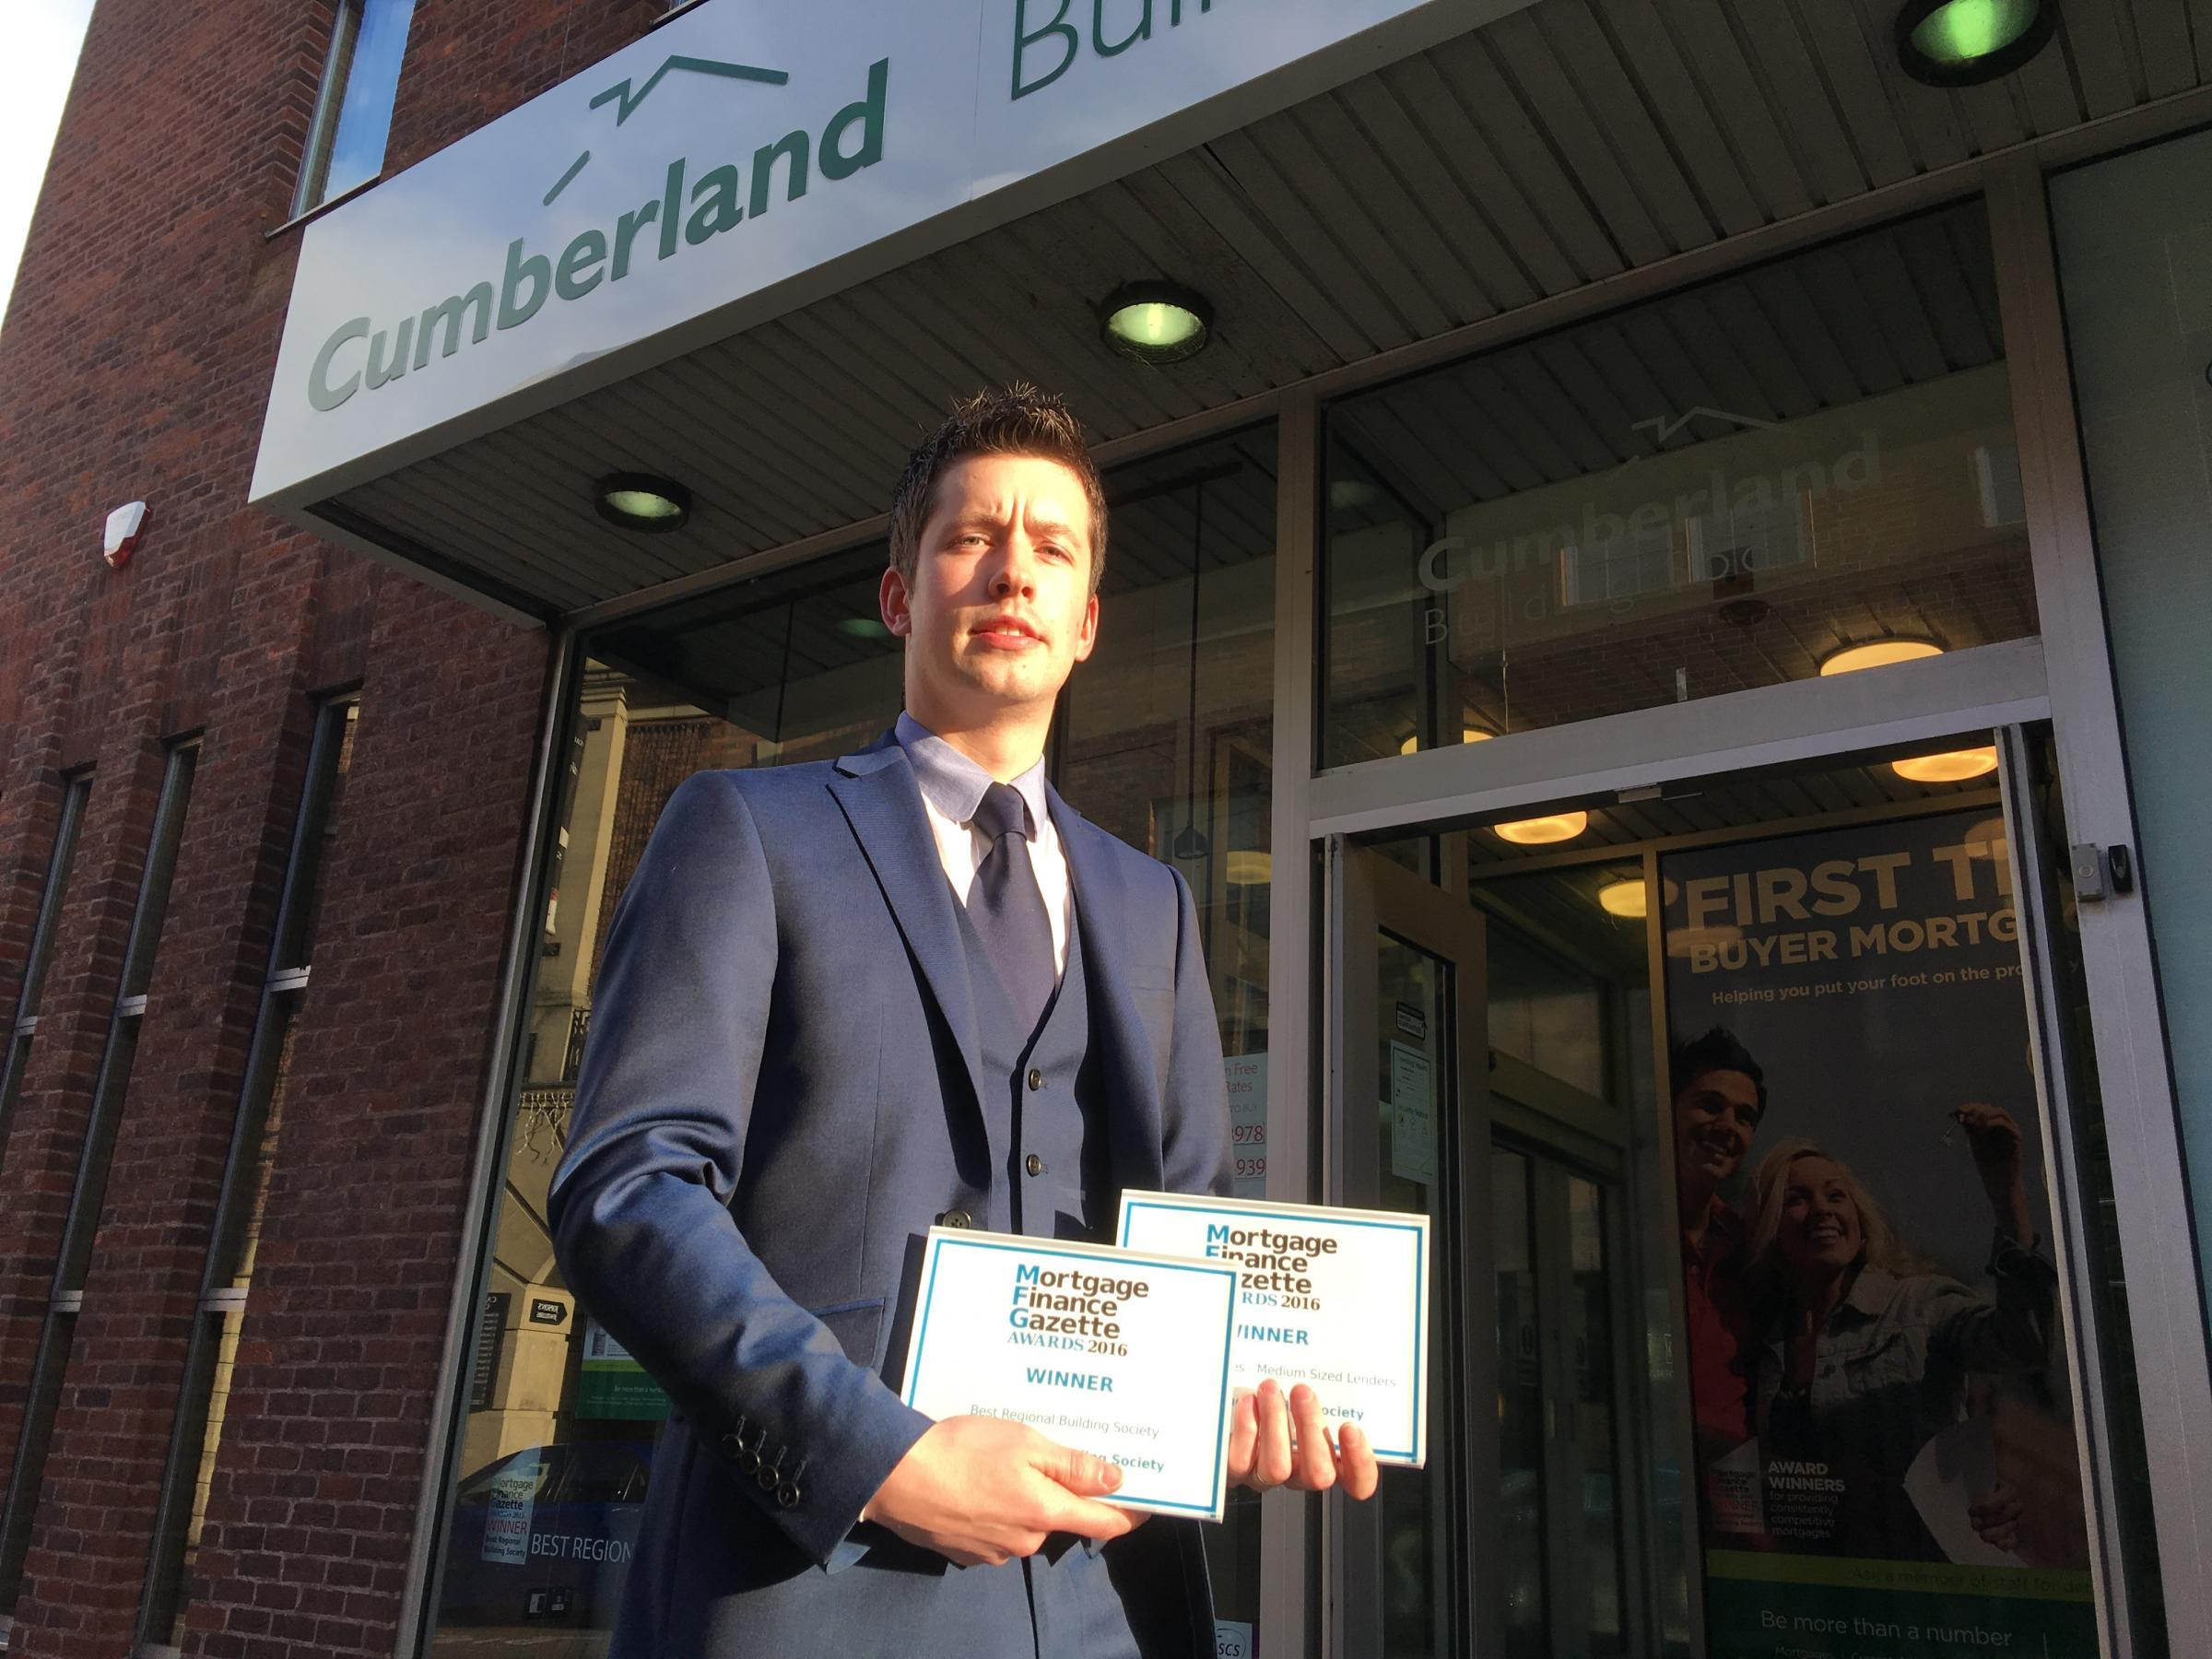 David Stewart from The Cumberland building society